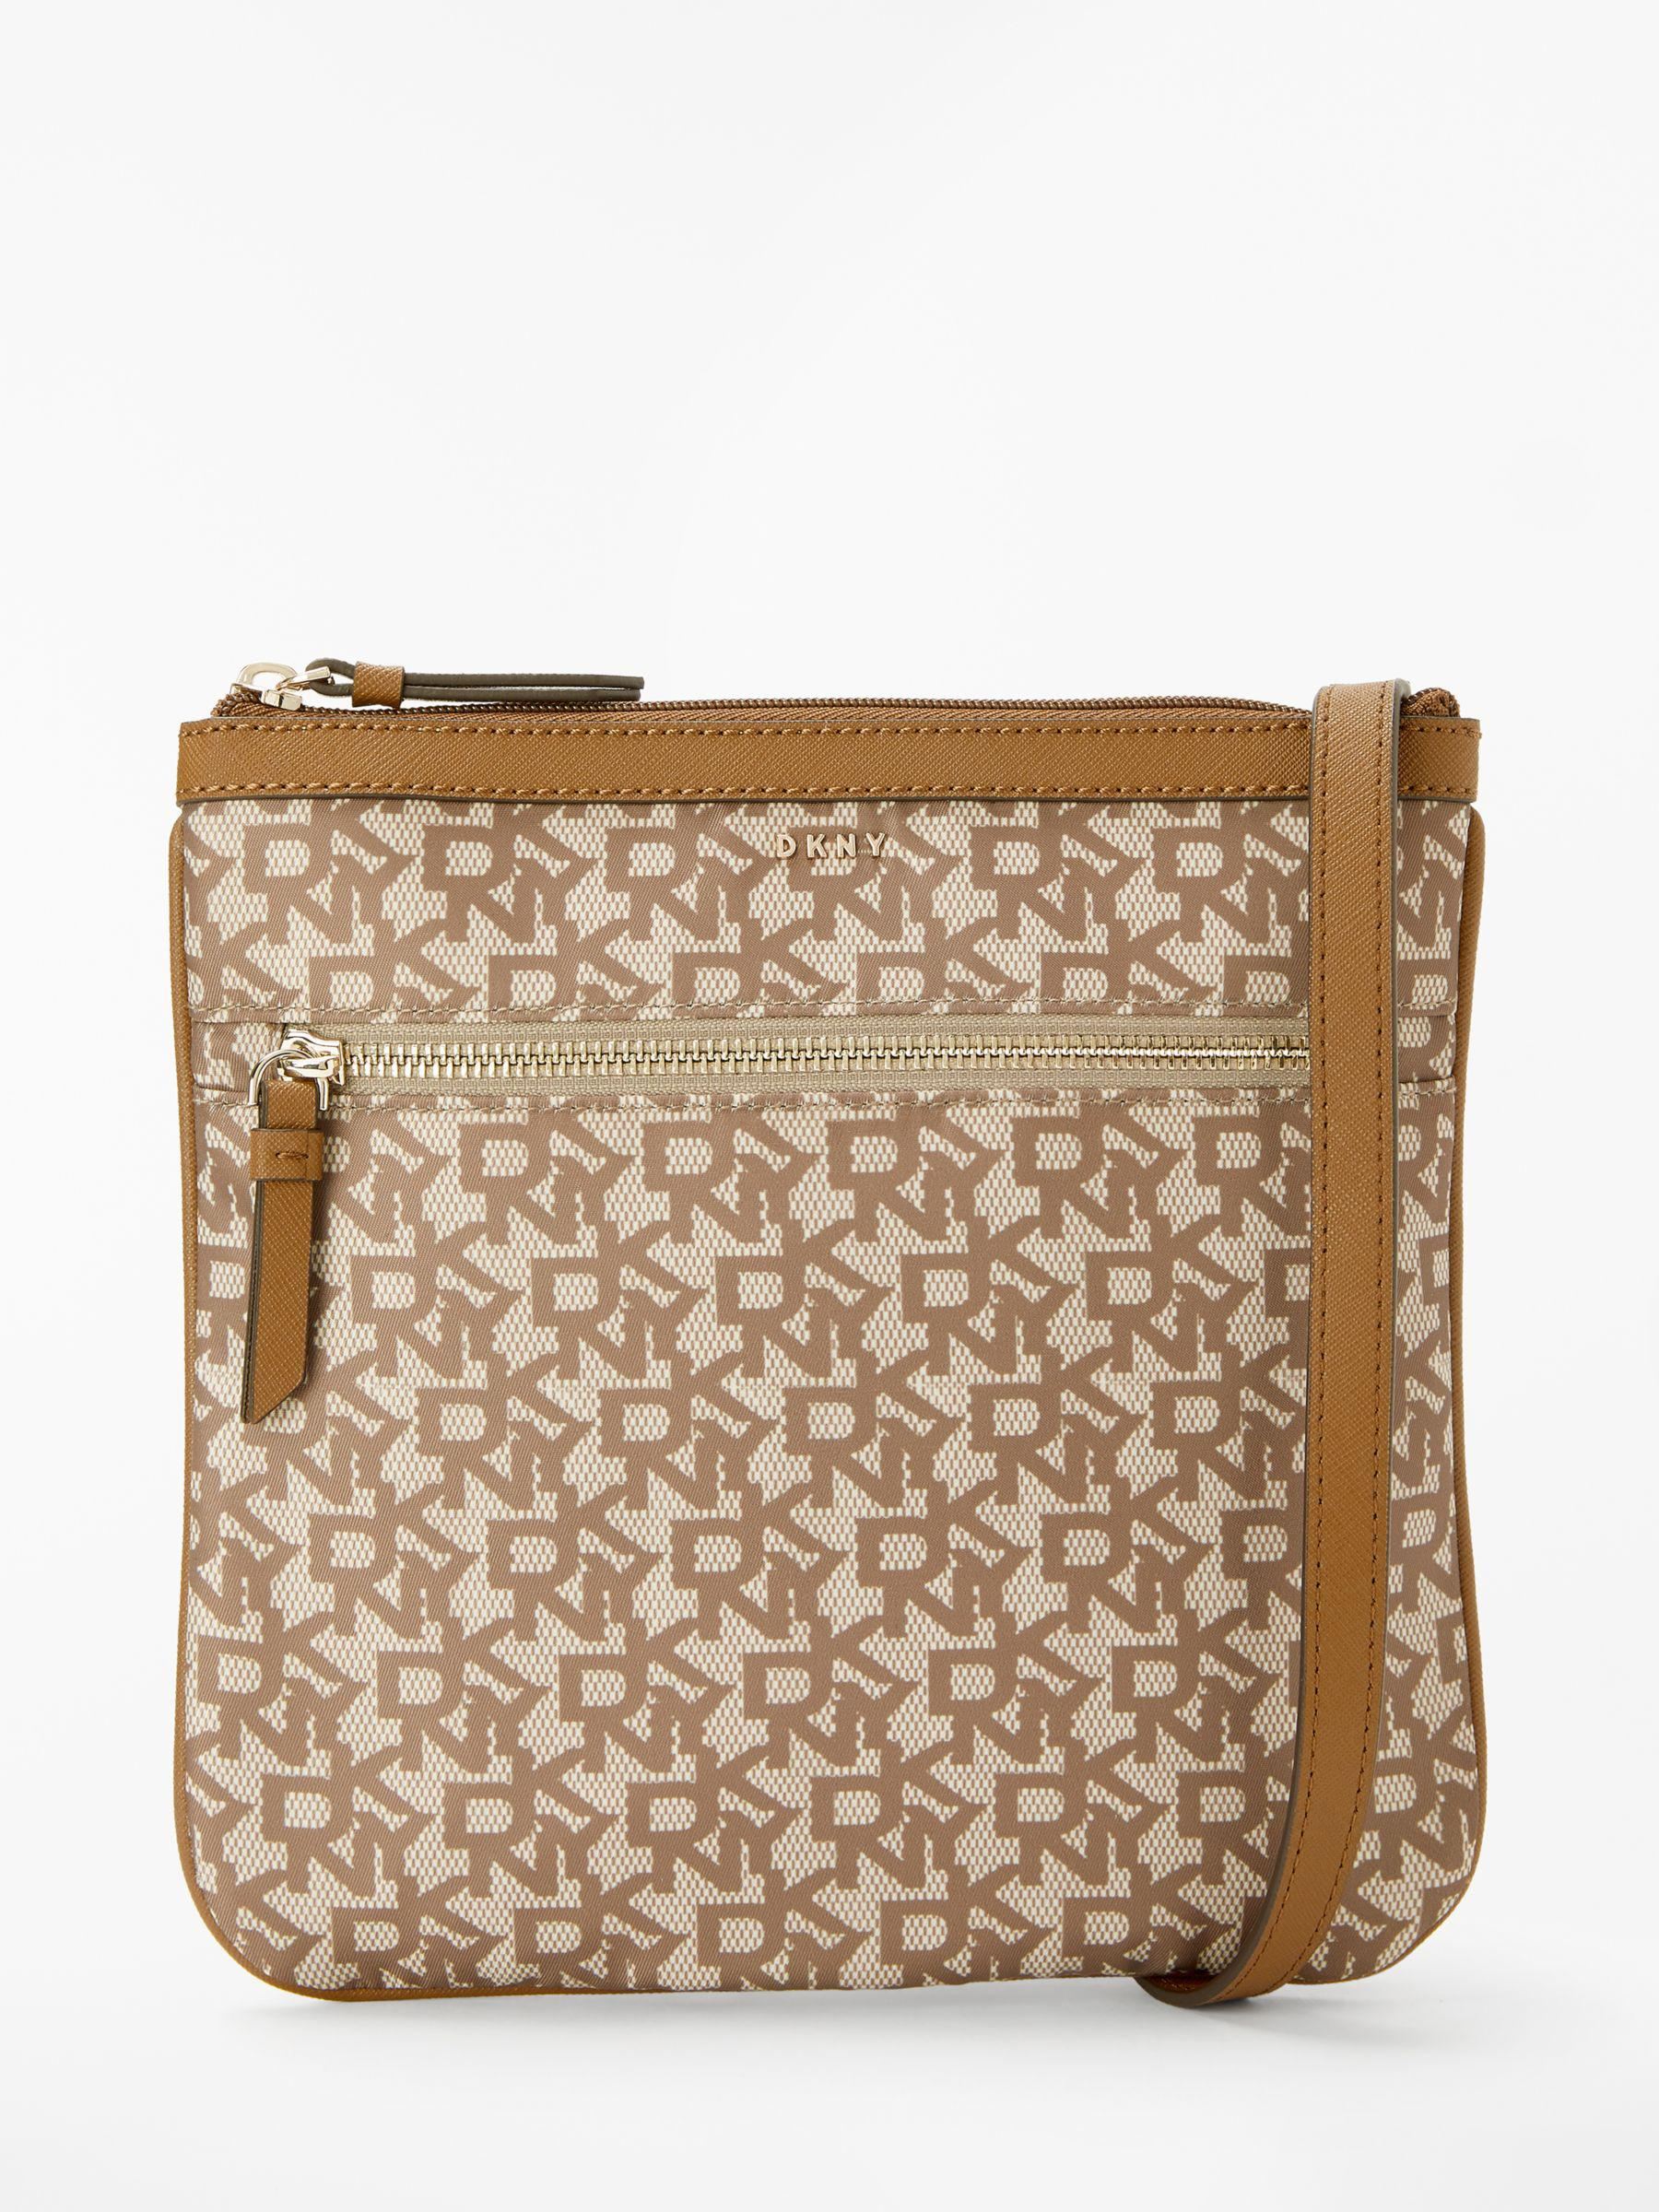 DKNY Casey Signature Cross Body Bag in Brown - Lyst 072a7216d9a28